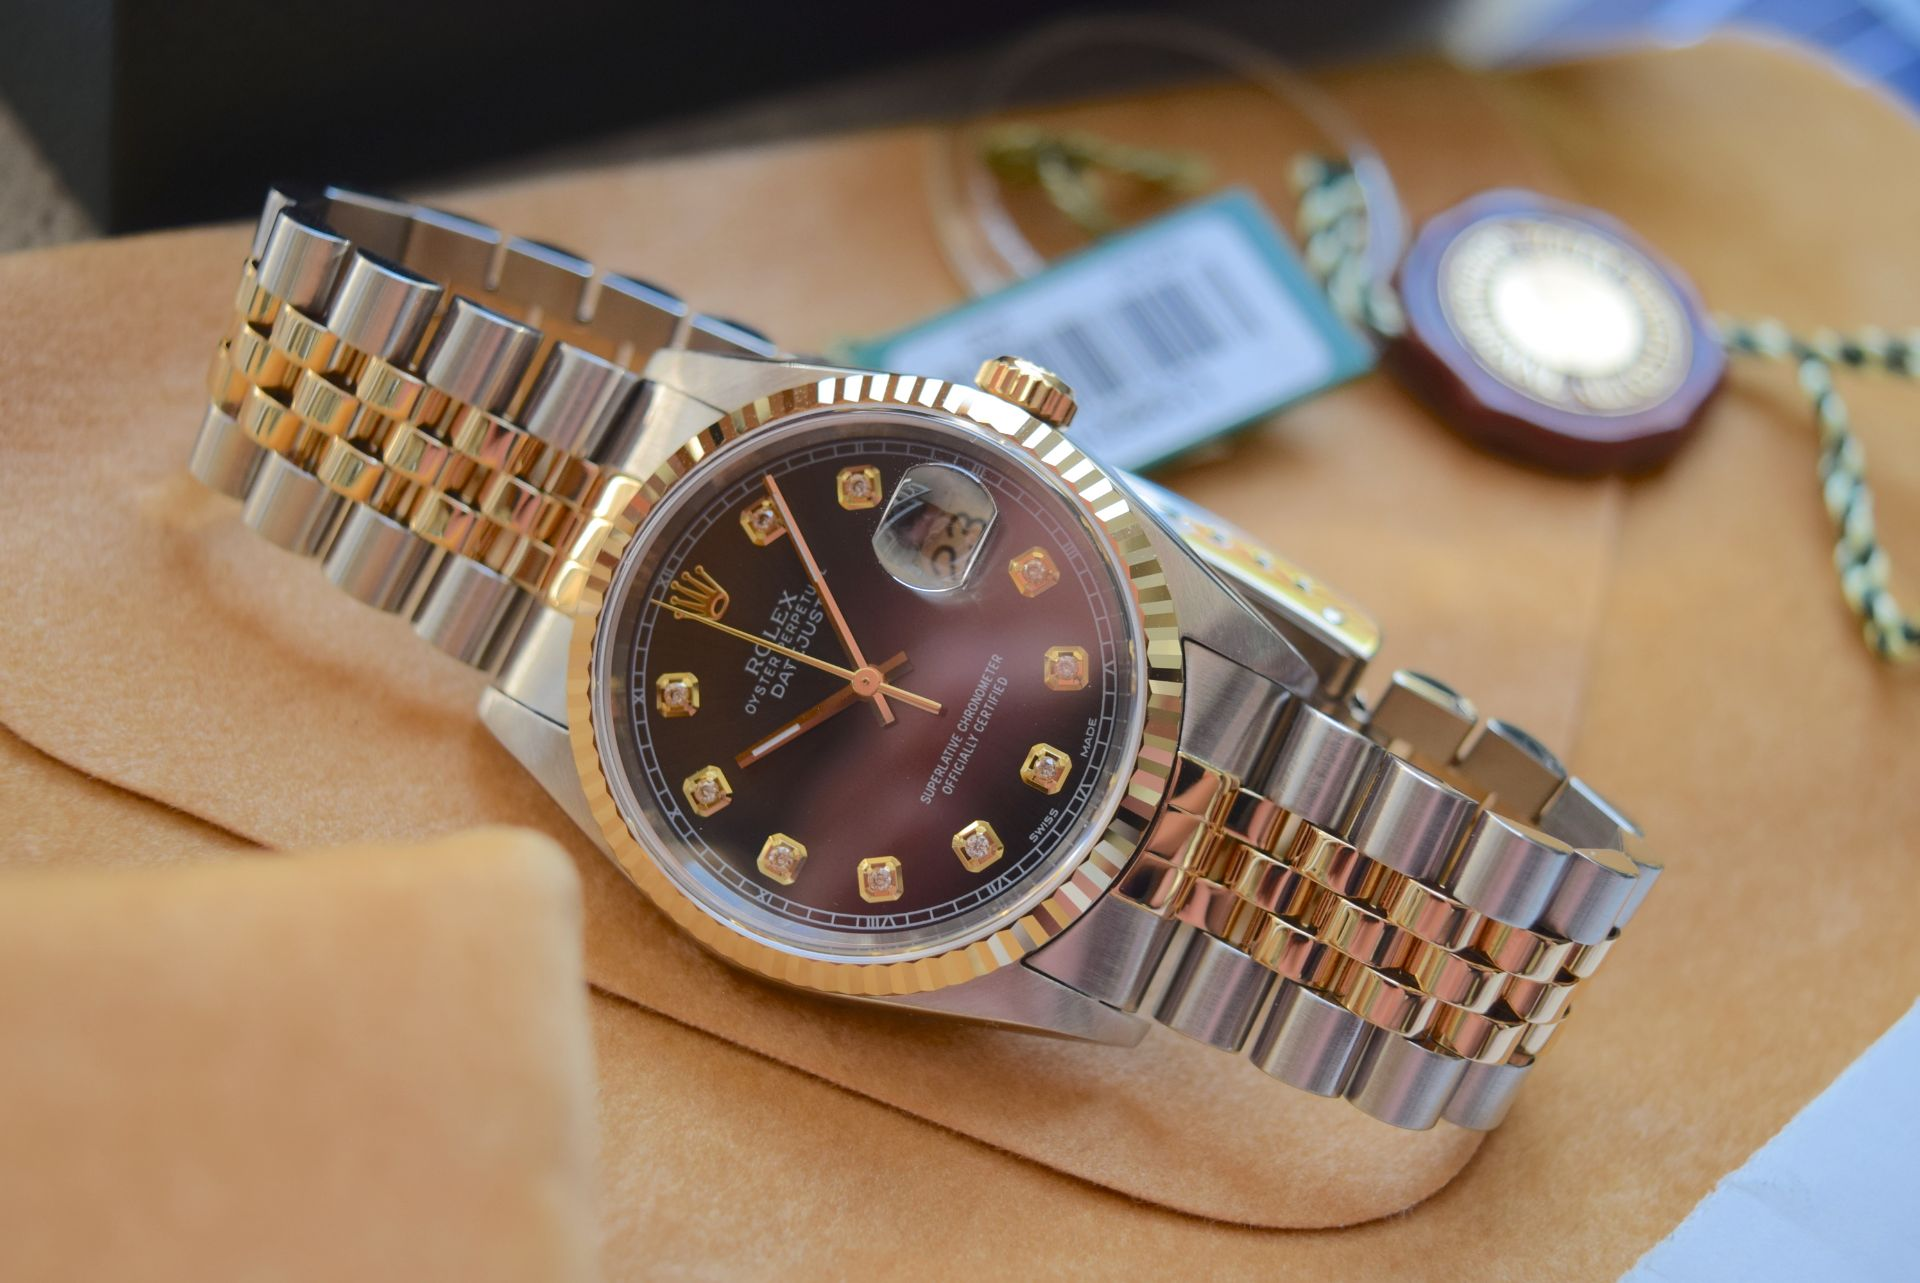 18CT GOLD/ STEEL ROLEX DATEJUST - 36MM, MENS (COMPLETE SET INC BOX, PAPERS, TAGS ETC) - Image 7 of 25